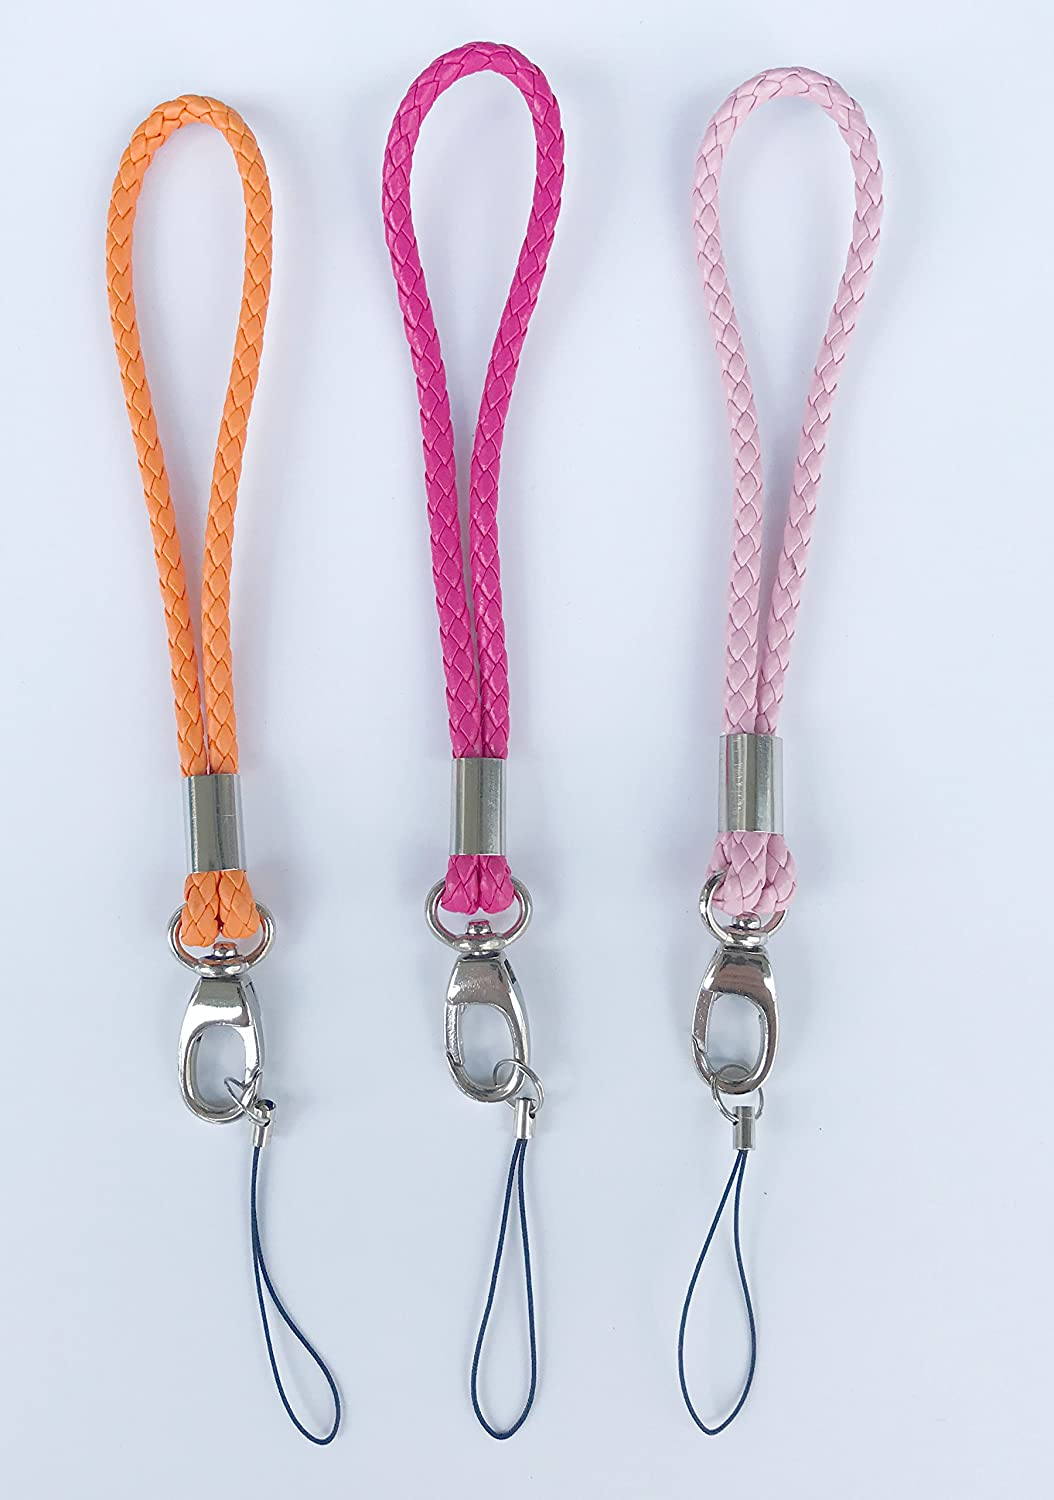 Leather Wrist Lanyard with J-Hook for Camera /& Cell Phone /& Purse/& keychain-Straps Around Your Wrist-Assorted Different Color ORANGE//RED ROSE//PINK 3Pack Fashion PU Braided Hand Wrist Strap